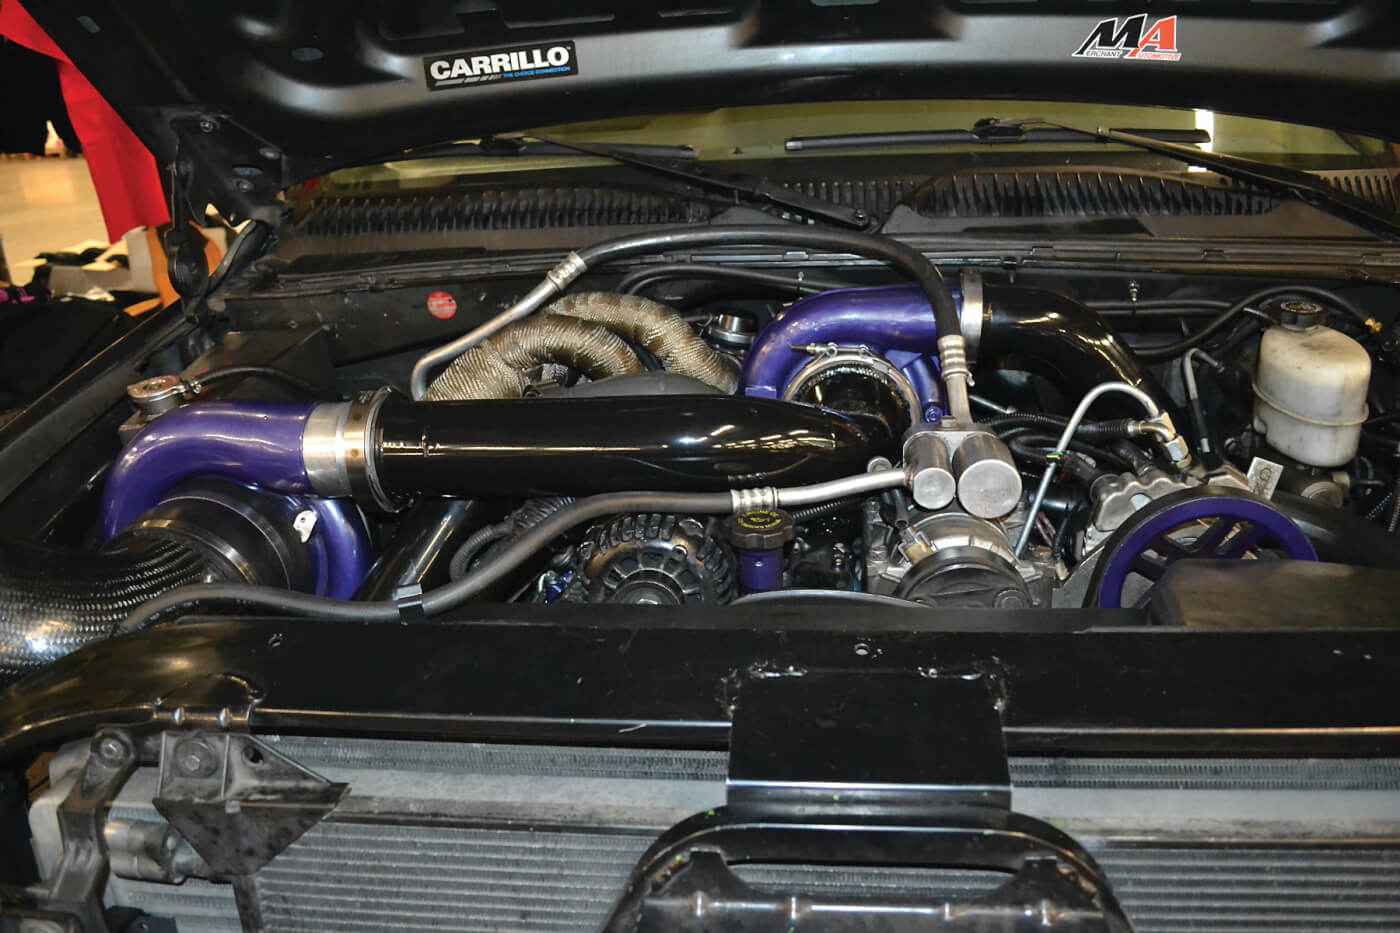 Chris continued the surprising Duramax domination of the Gauntlet Challenge with a strong showing in both horsepower and torque.